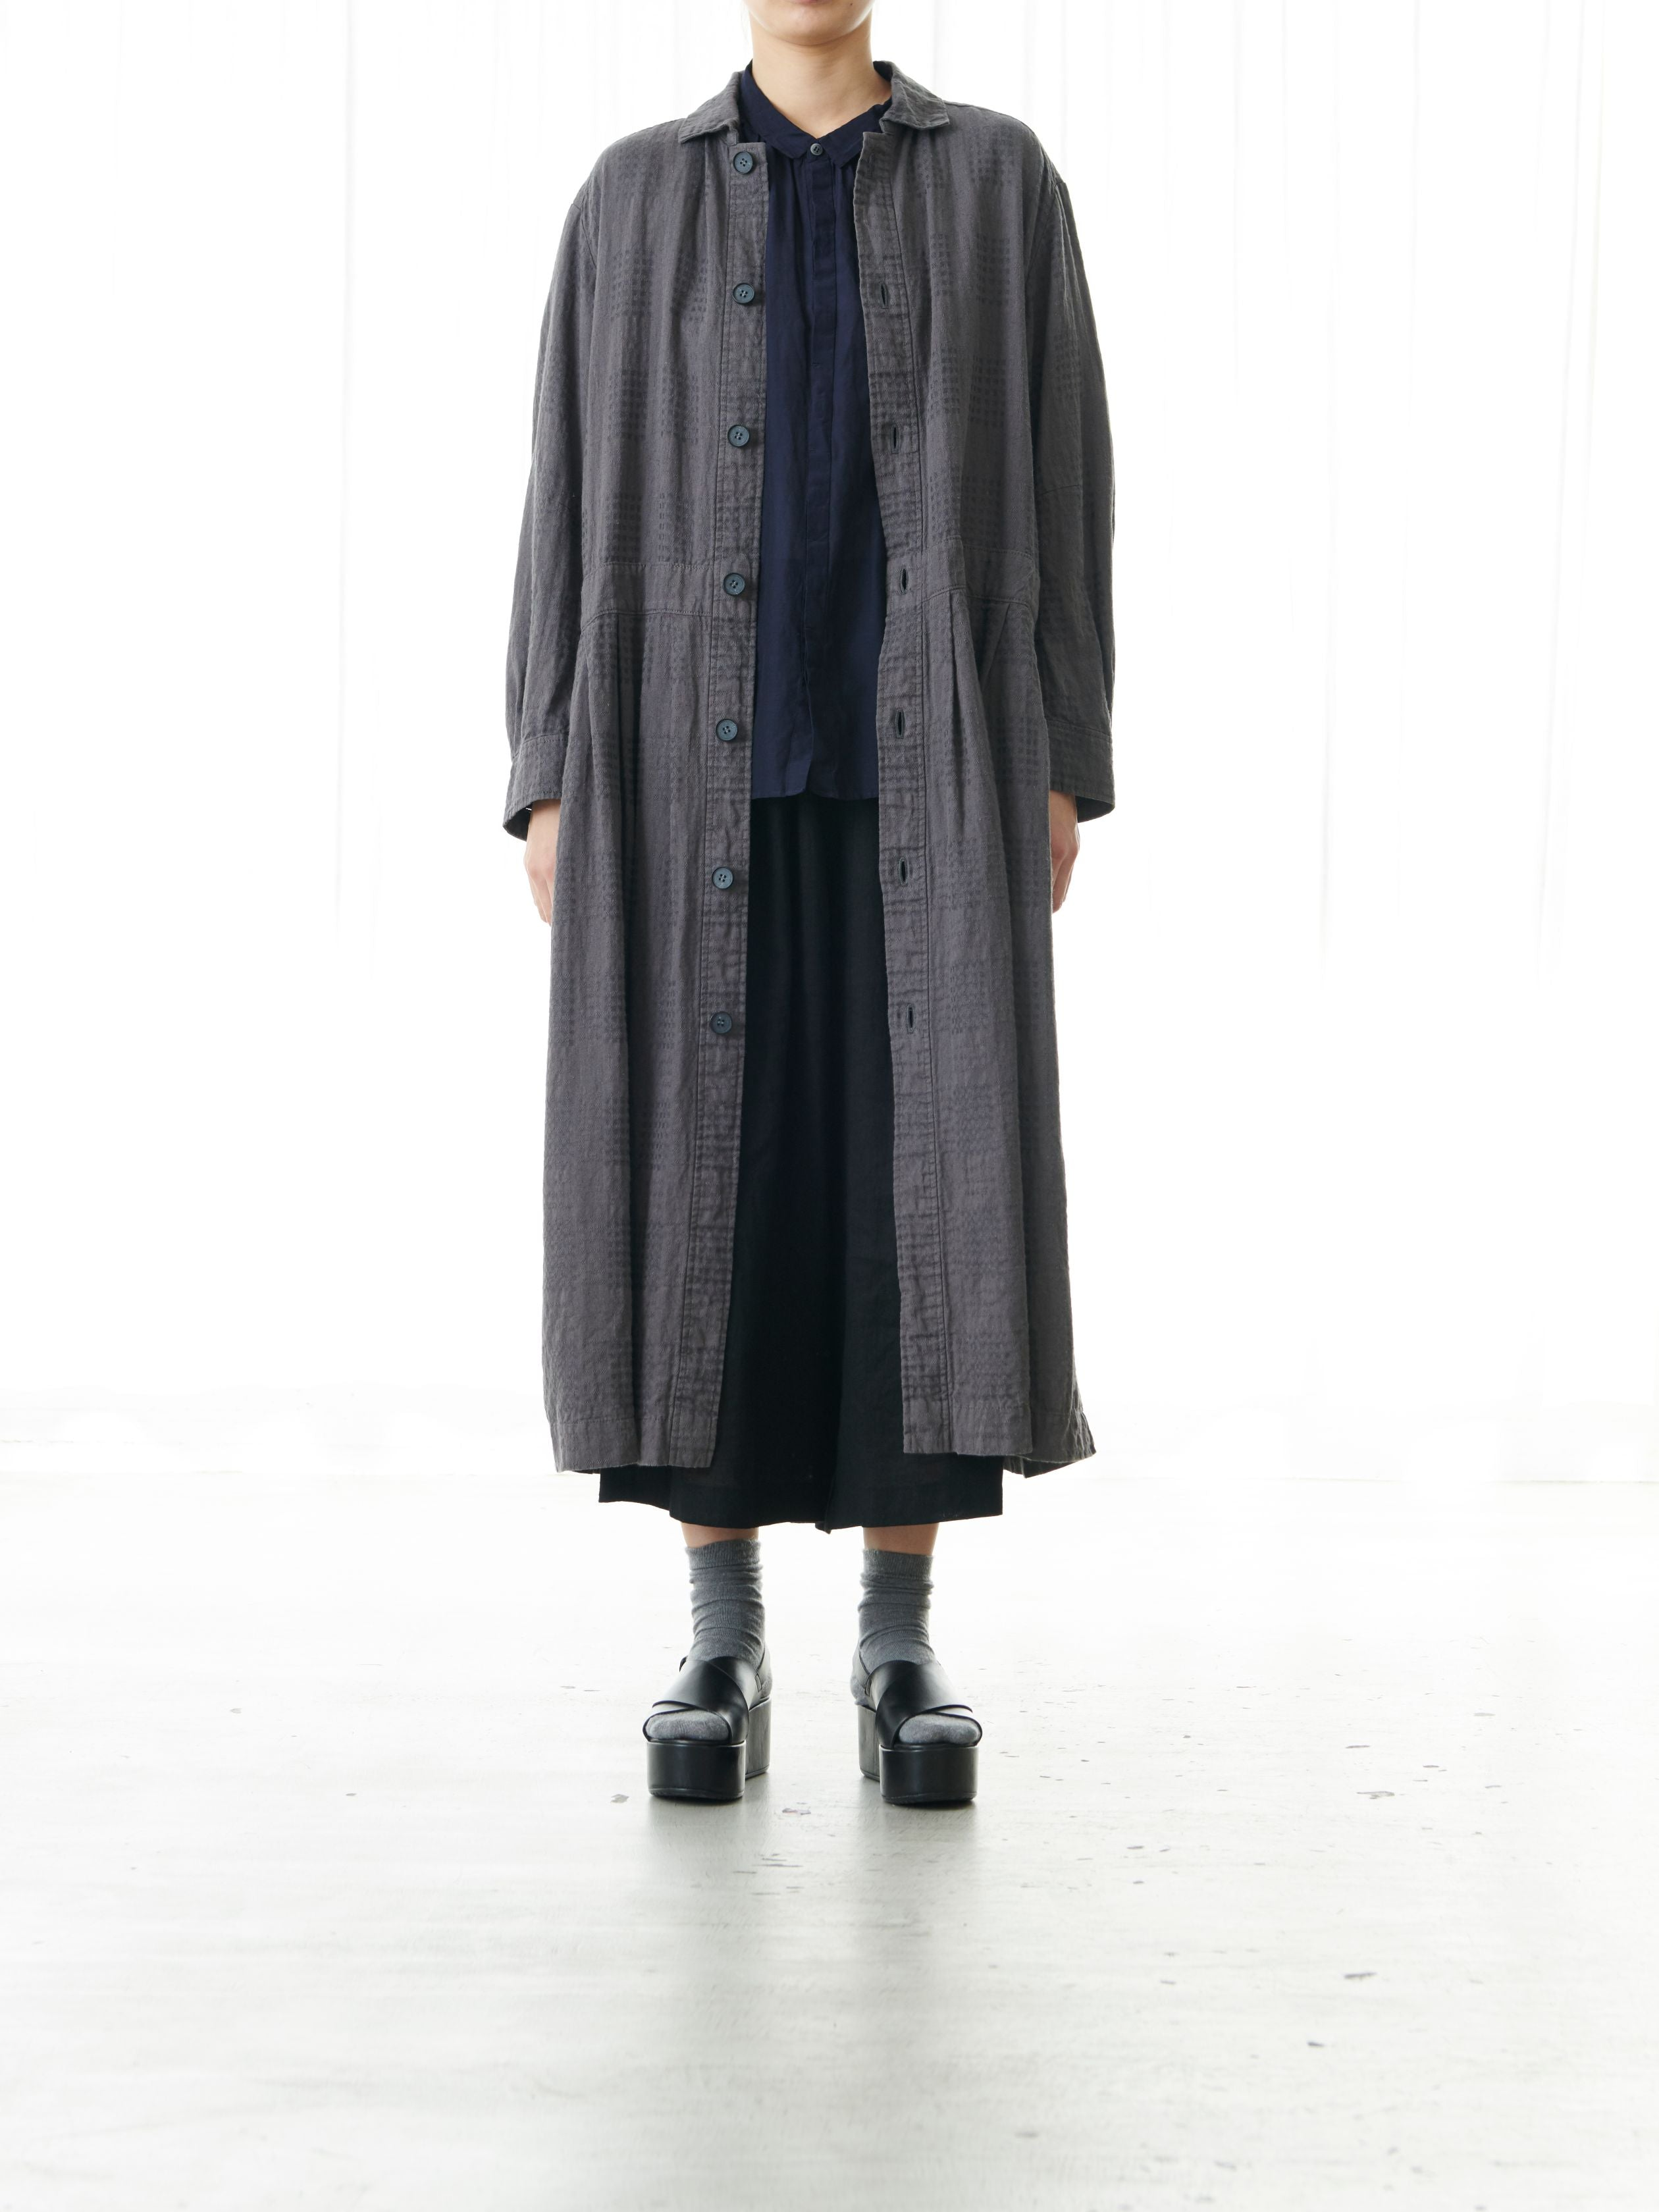 TEXTURED LINEN DRESS COAT